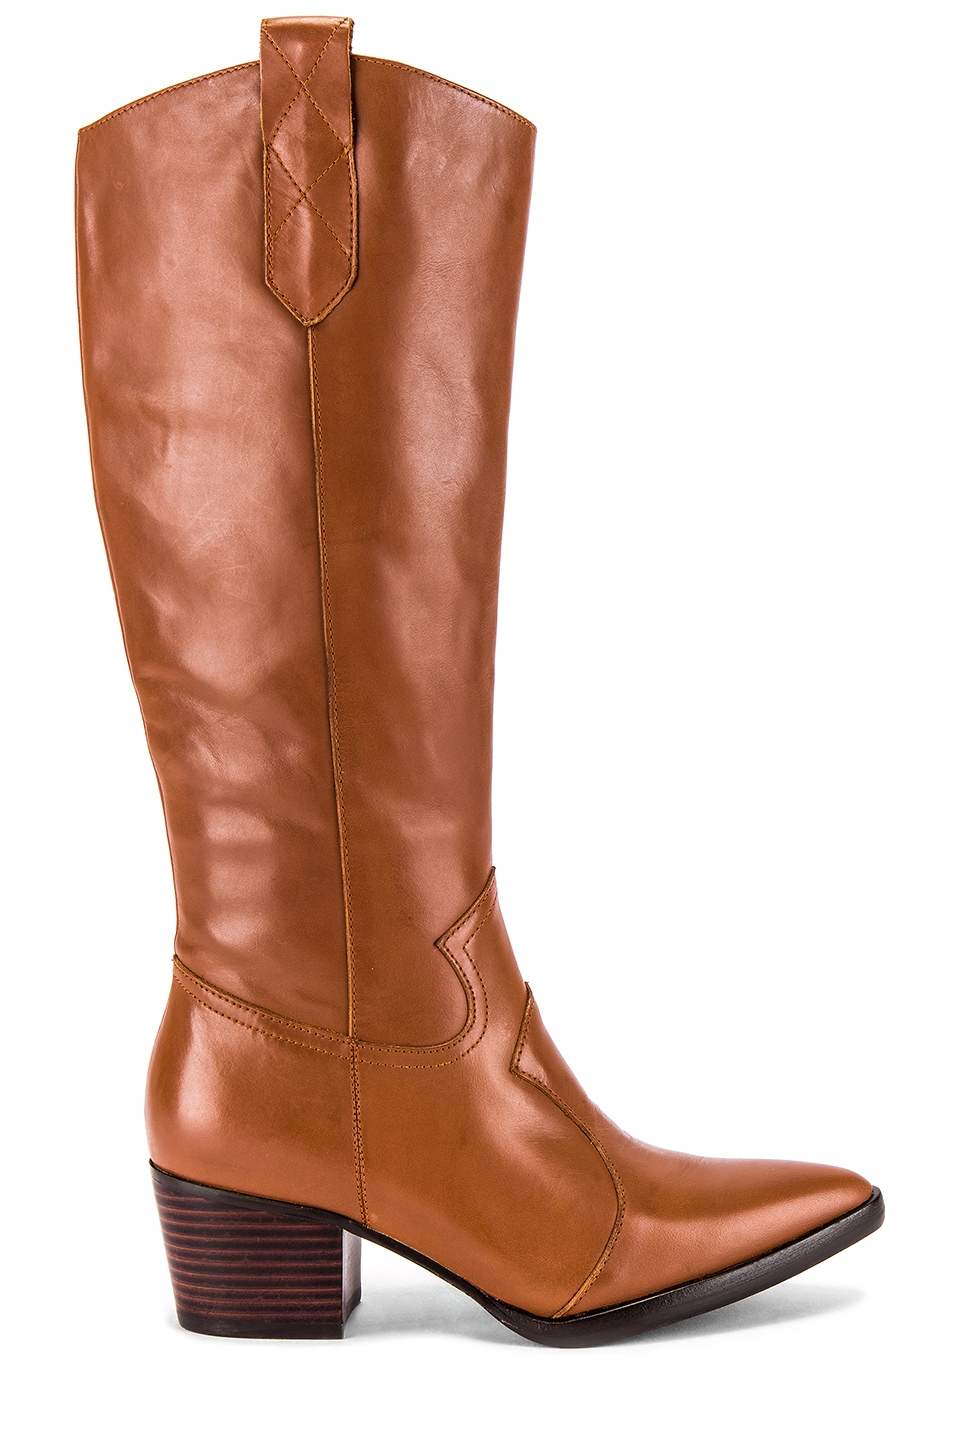 Alias Mae Stevie Boot in Tan Burnished